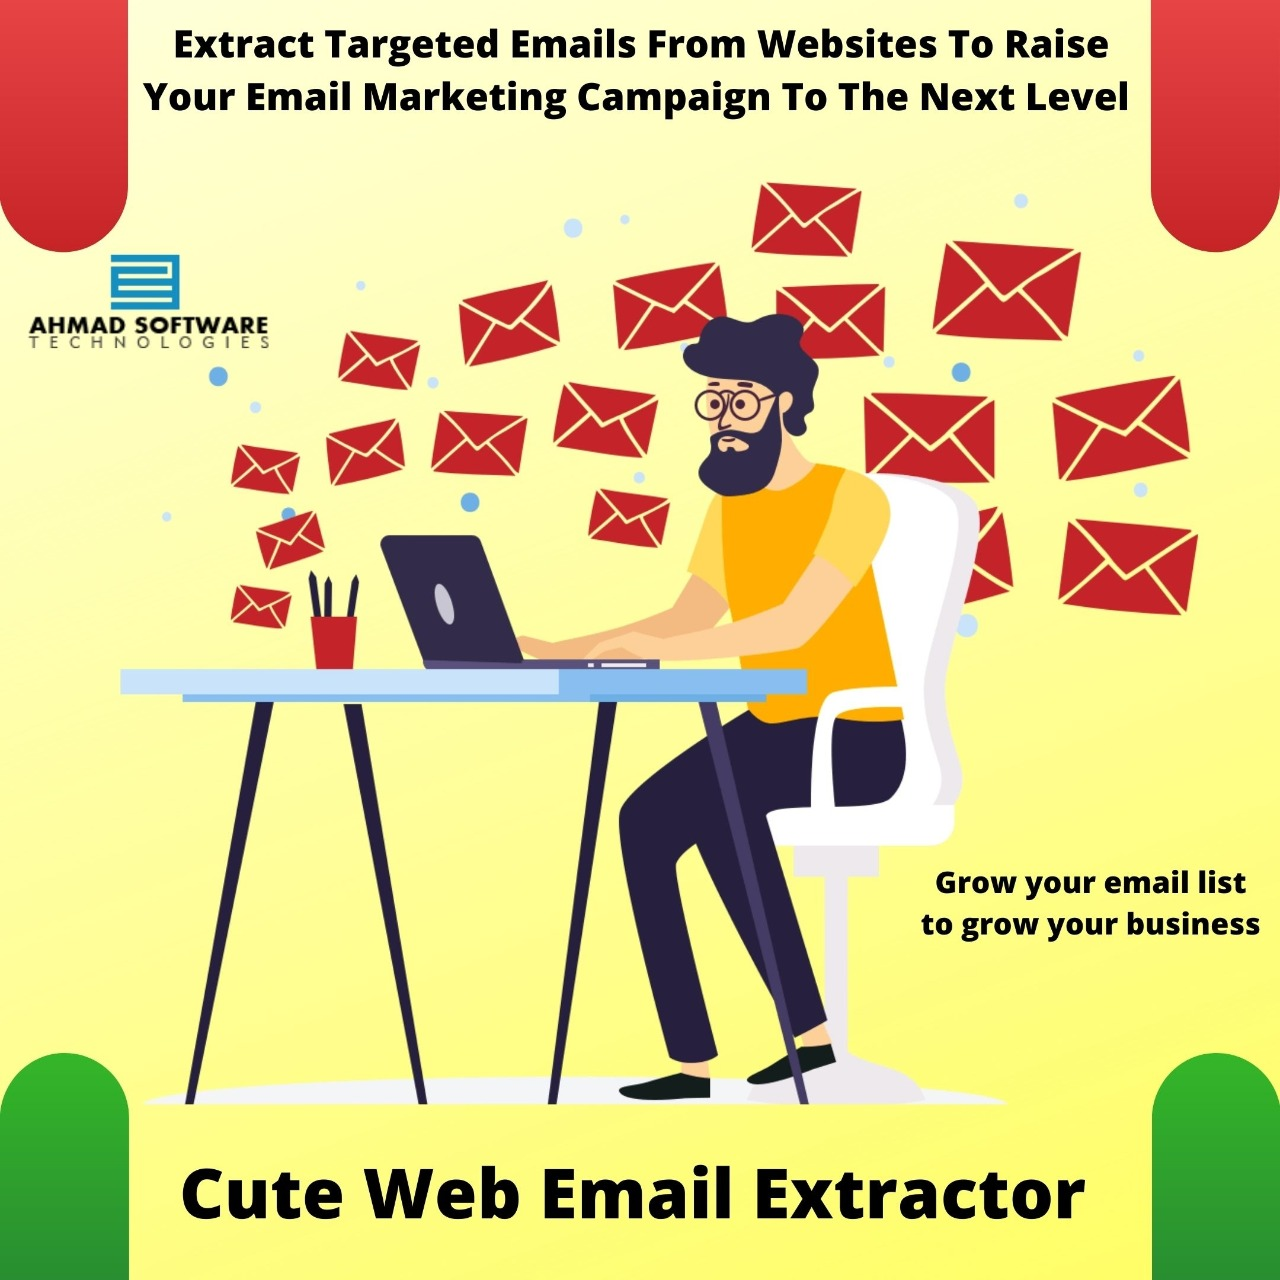 Extract Emails From Websites To Grow Business